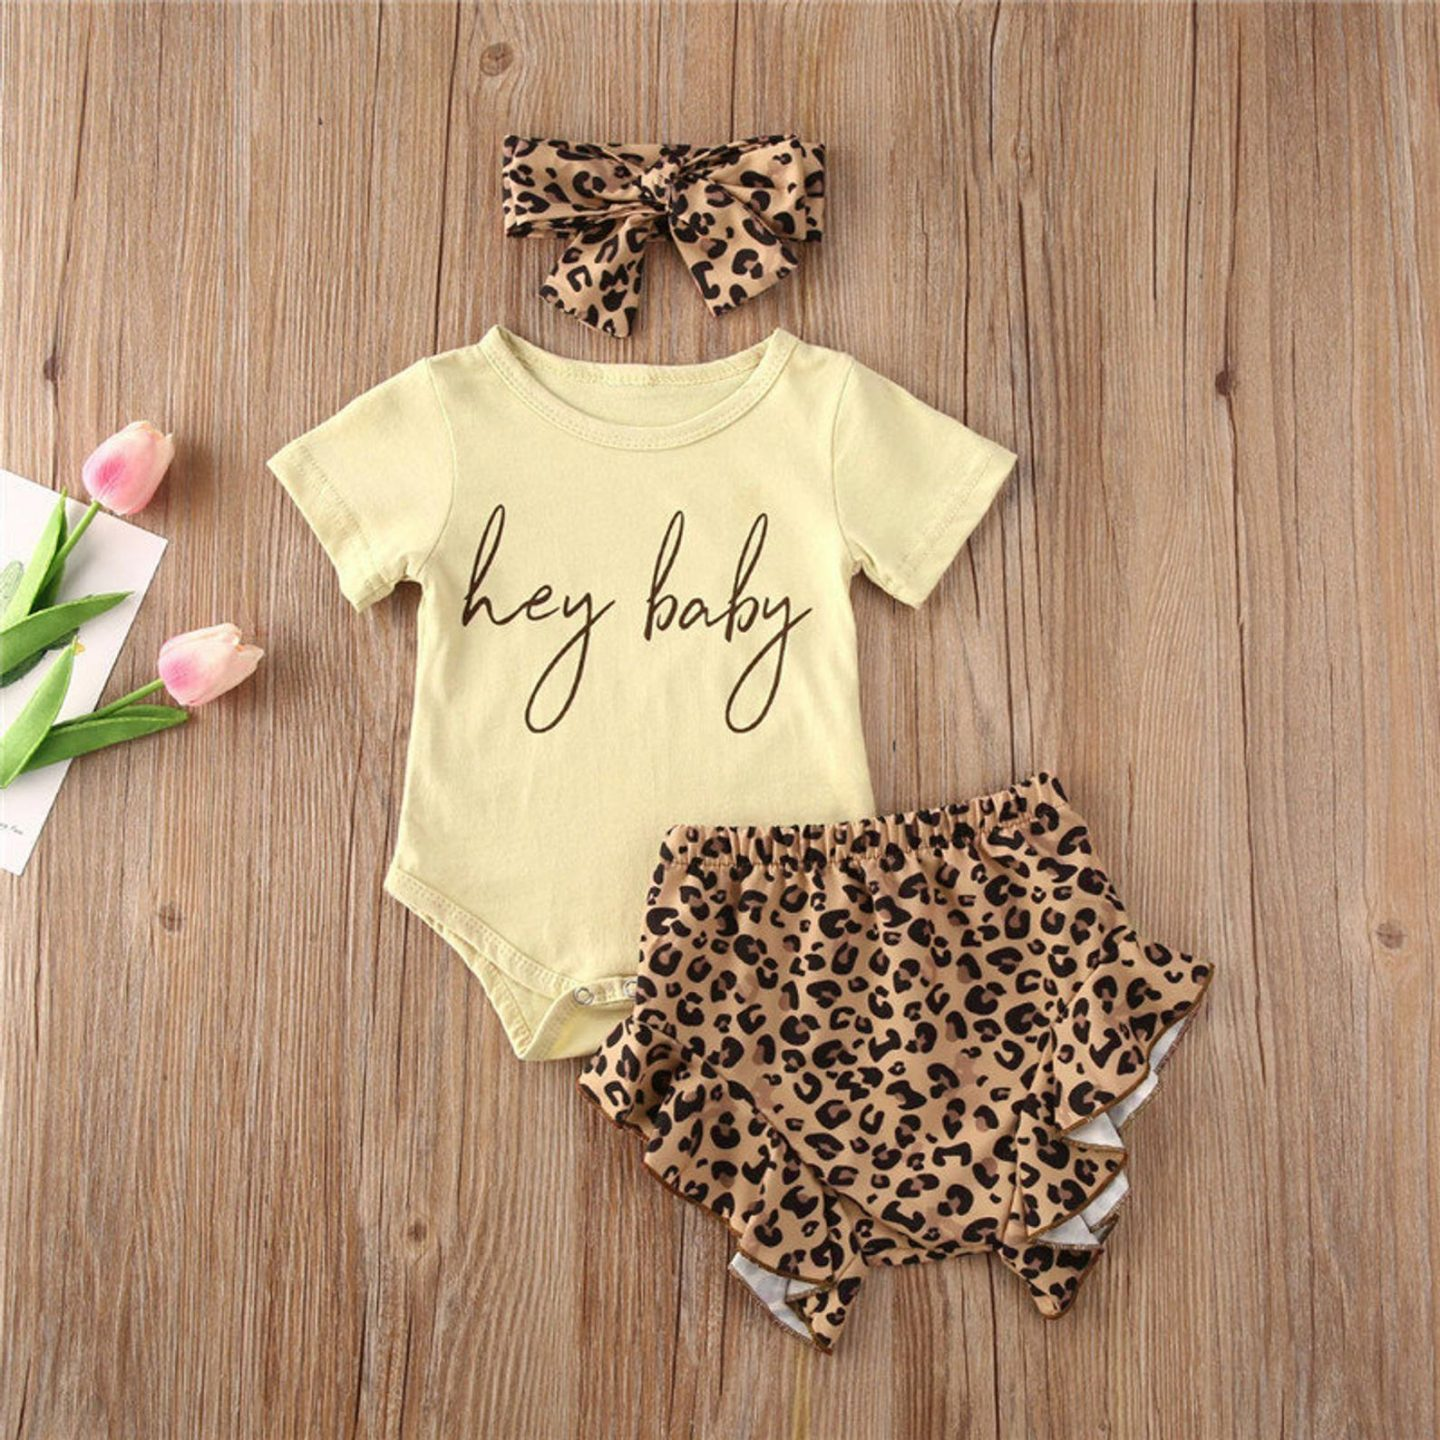 Cute baby girl outfits for toddlers with leopard print